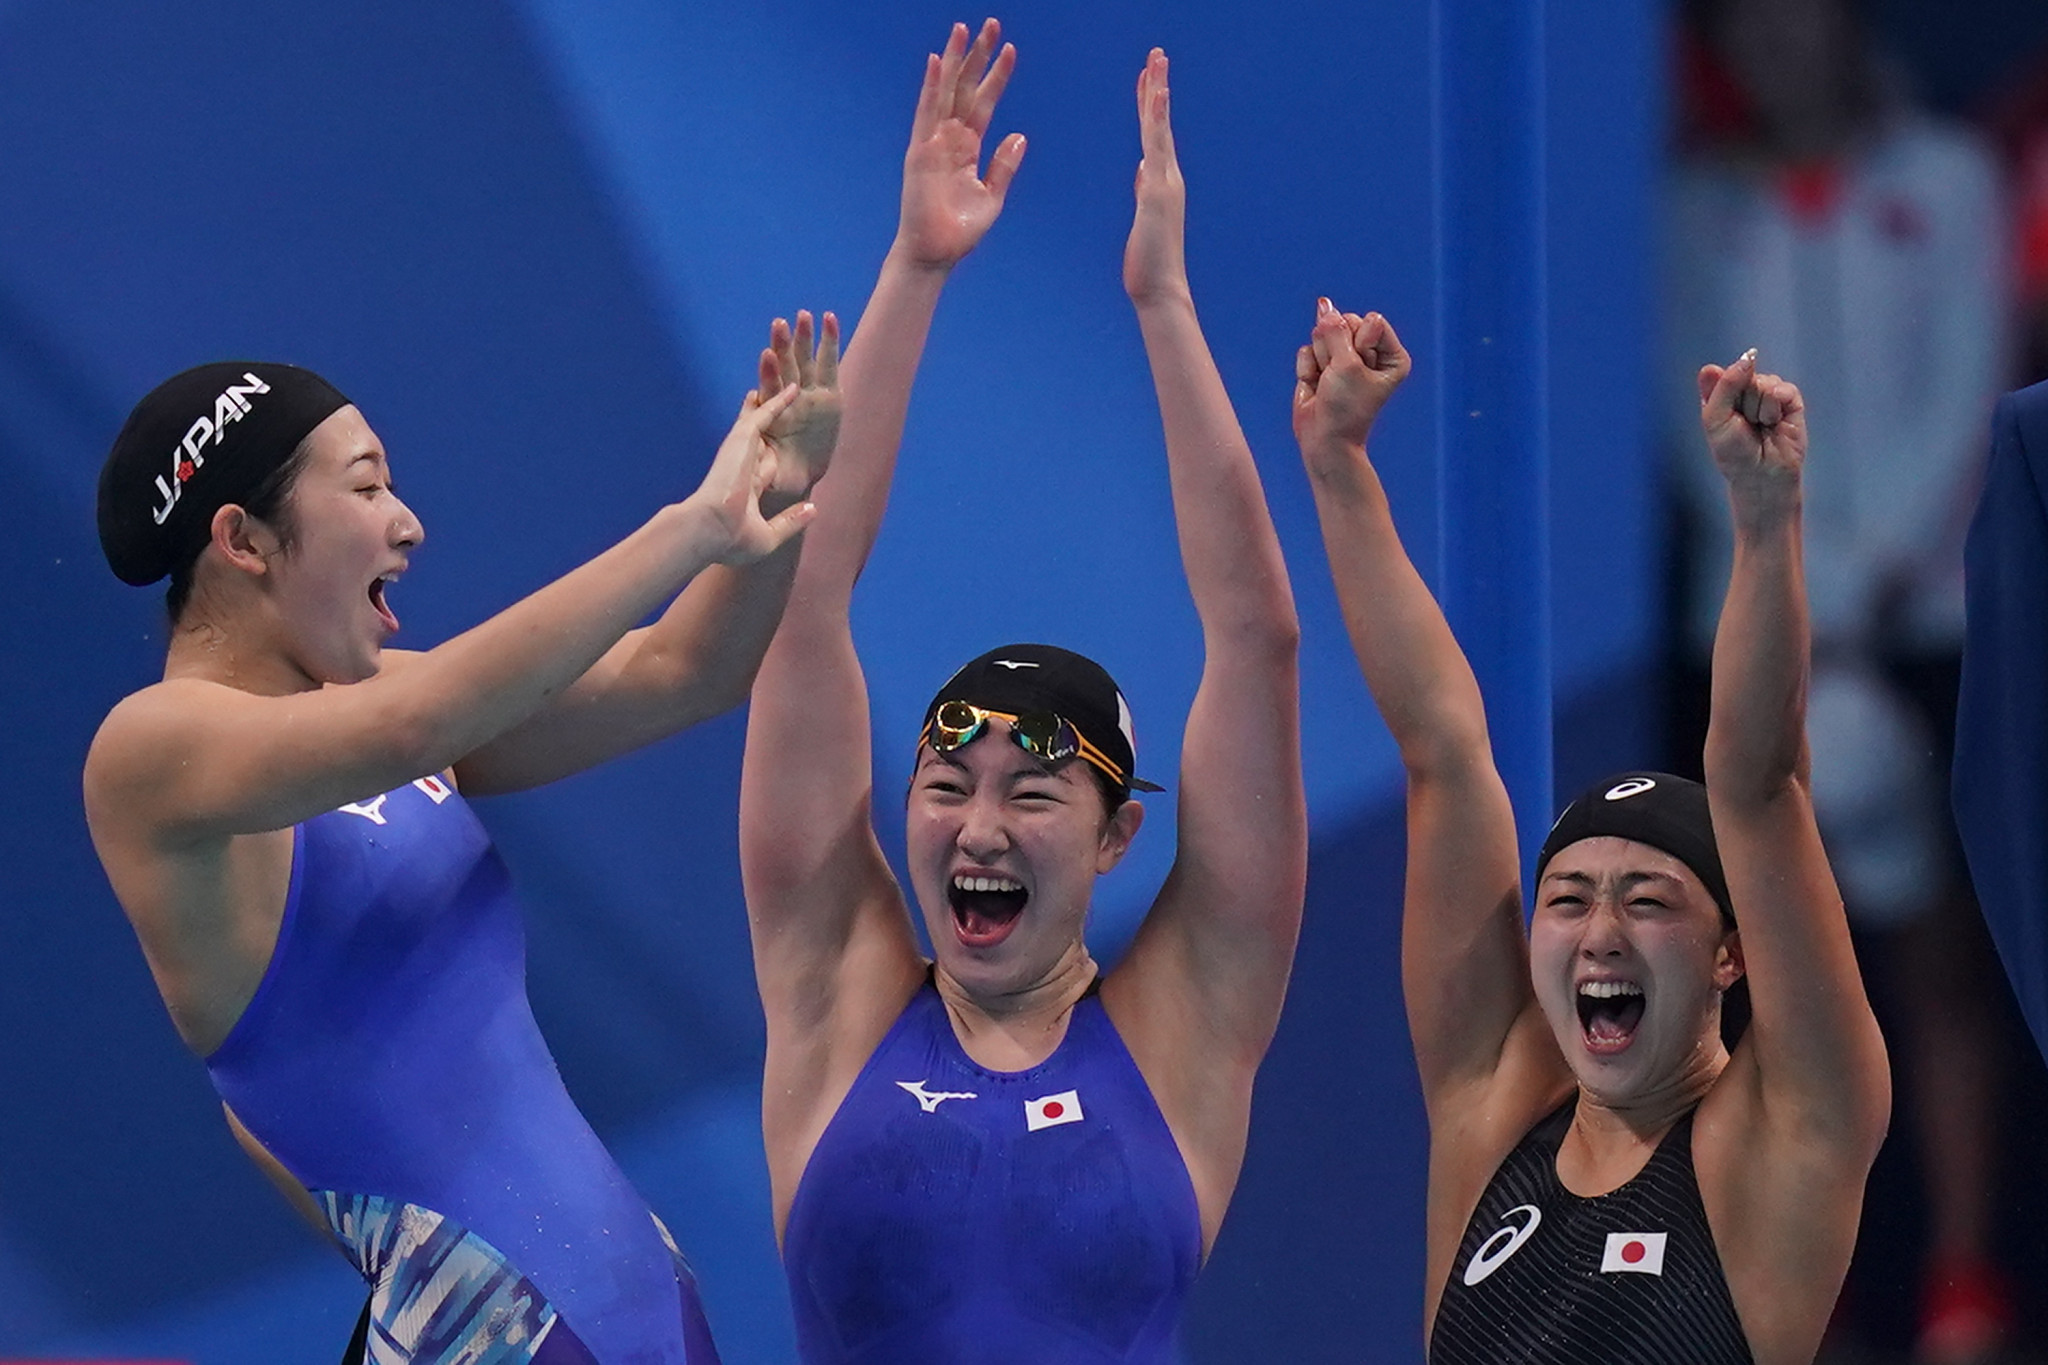 Japan won the final three gold medals tonight, including the women's 4x100m freestyle relay, setting an Asian Games record as they beat big rivals China ©Getty Images